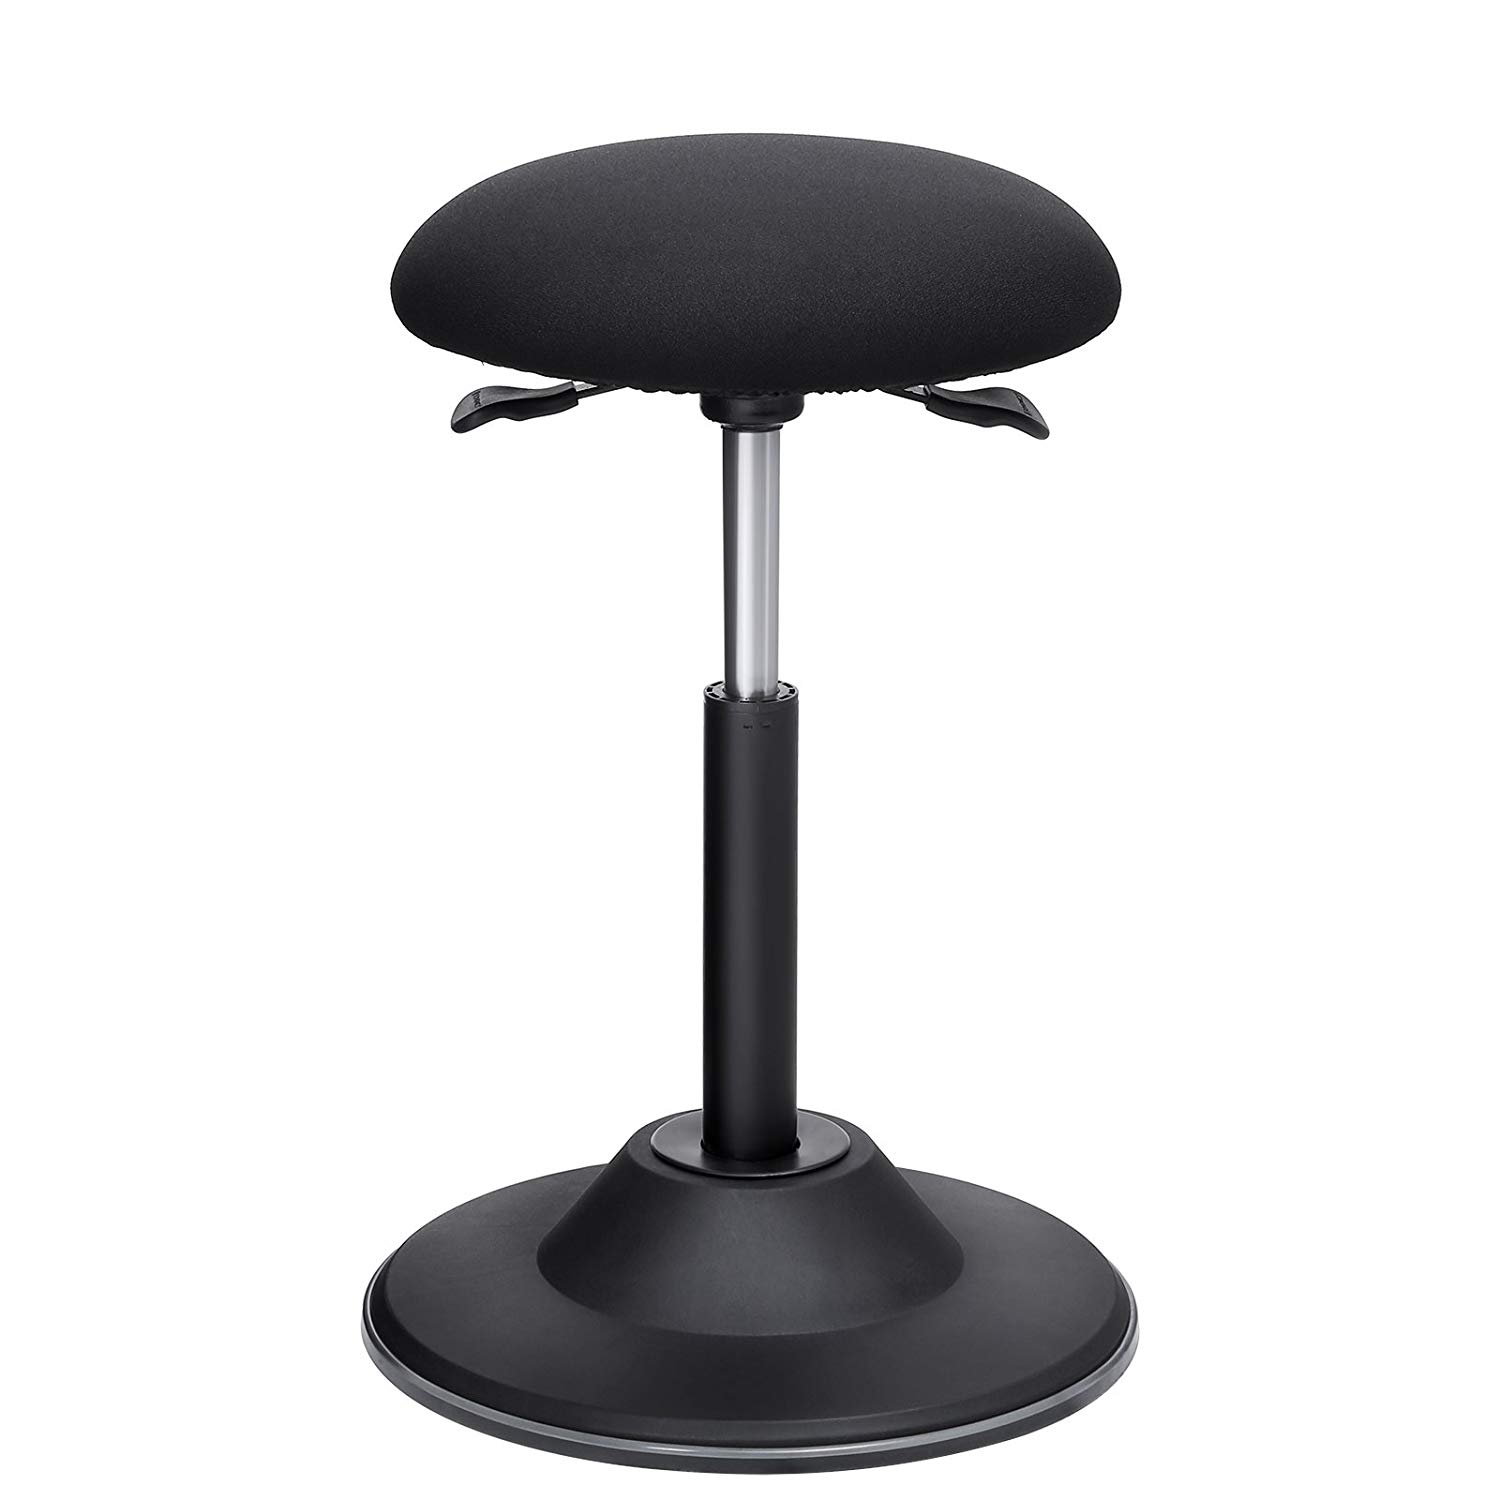 SONGMICS Standing Desk Chair, Adjustable Height Ergonomic Standing Stool, 360°Swivel Sitting Balance Chair, Anti-Slip Bottom Pad, Sit-Stand Stool for Office Home School, Fabric Black UOSC01BK